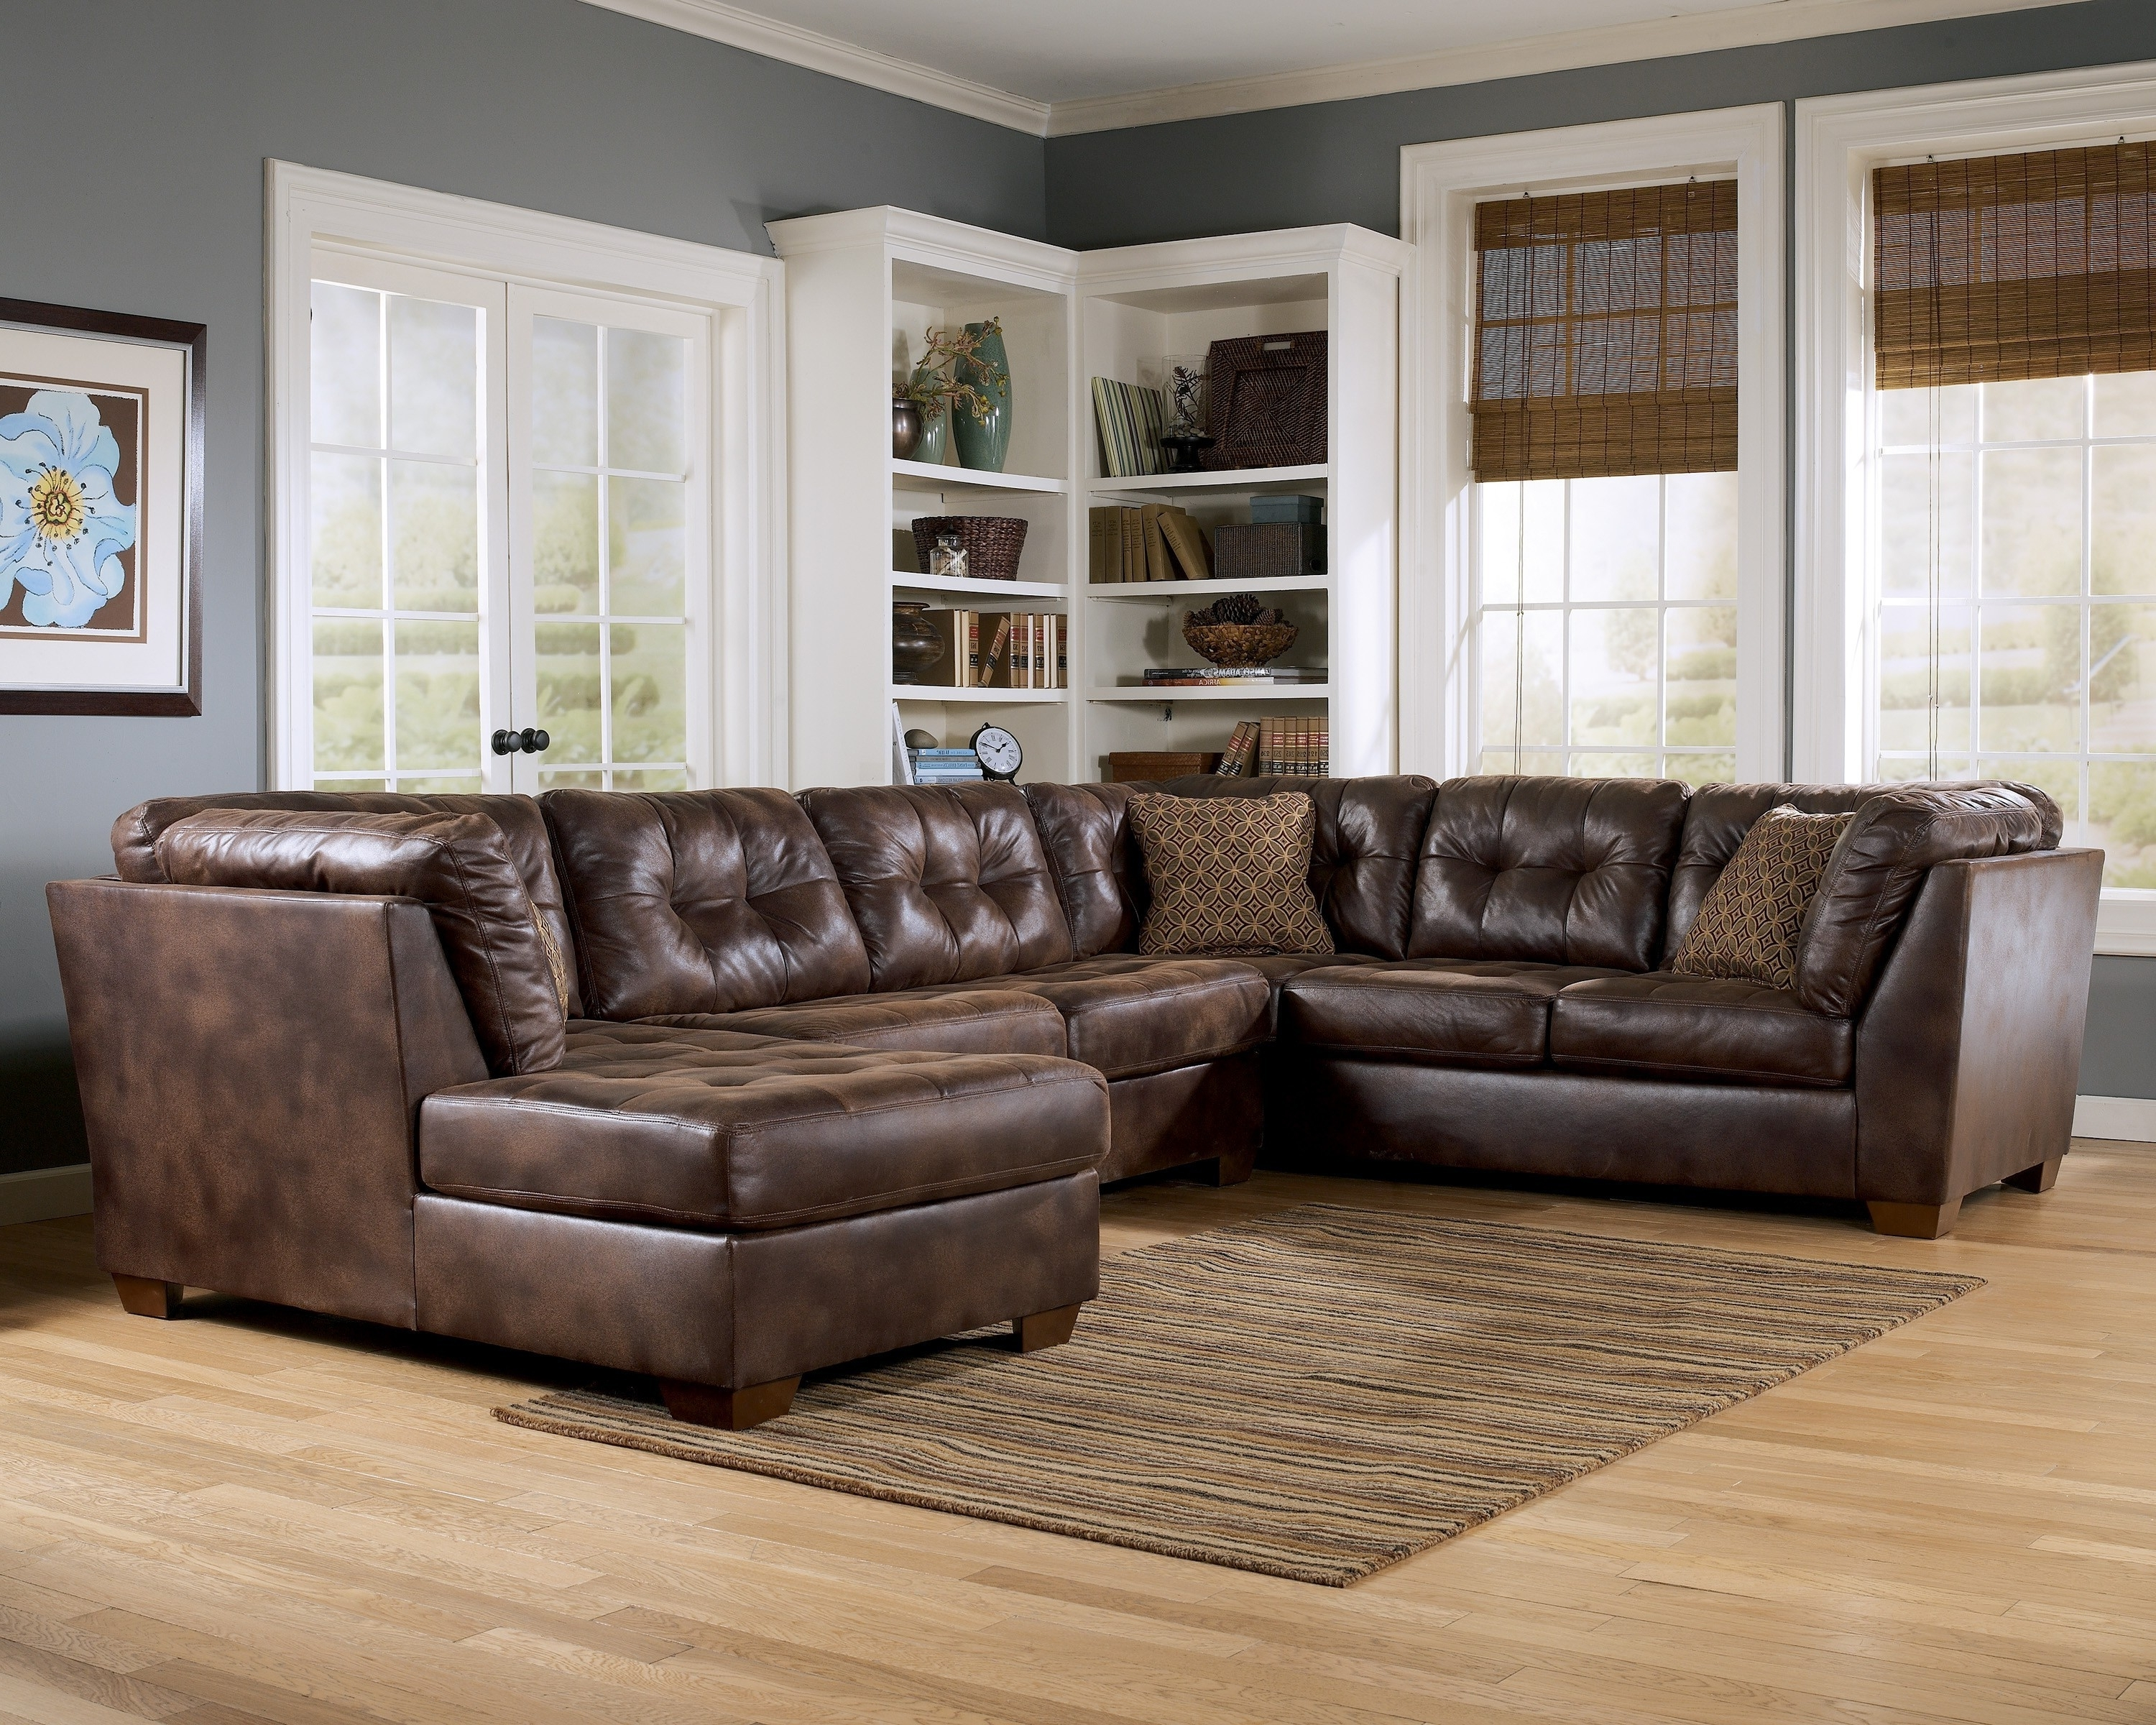 Leather Lounge Sofas Inside Fashionable L Black Leather Chaise Lounge Sofa With Back And Brown Cushions (View 10 of 20)